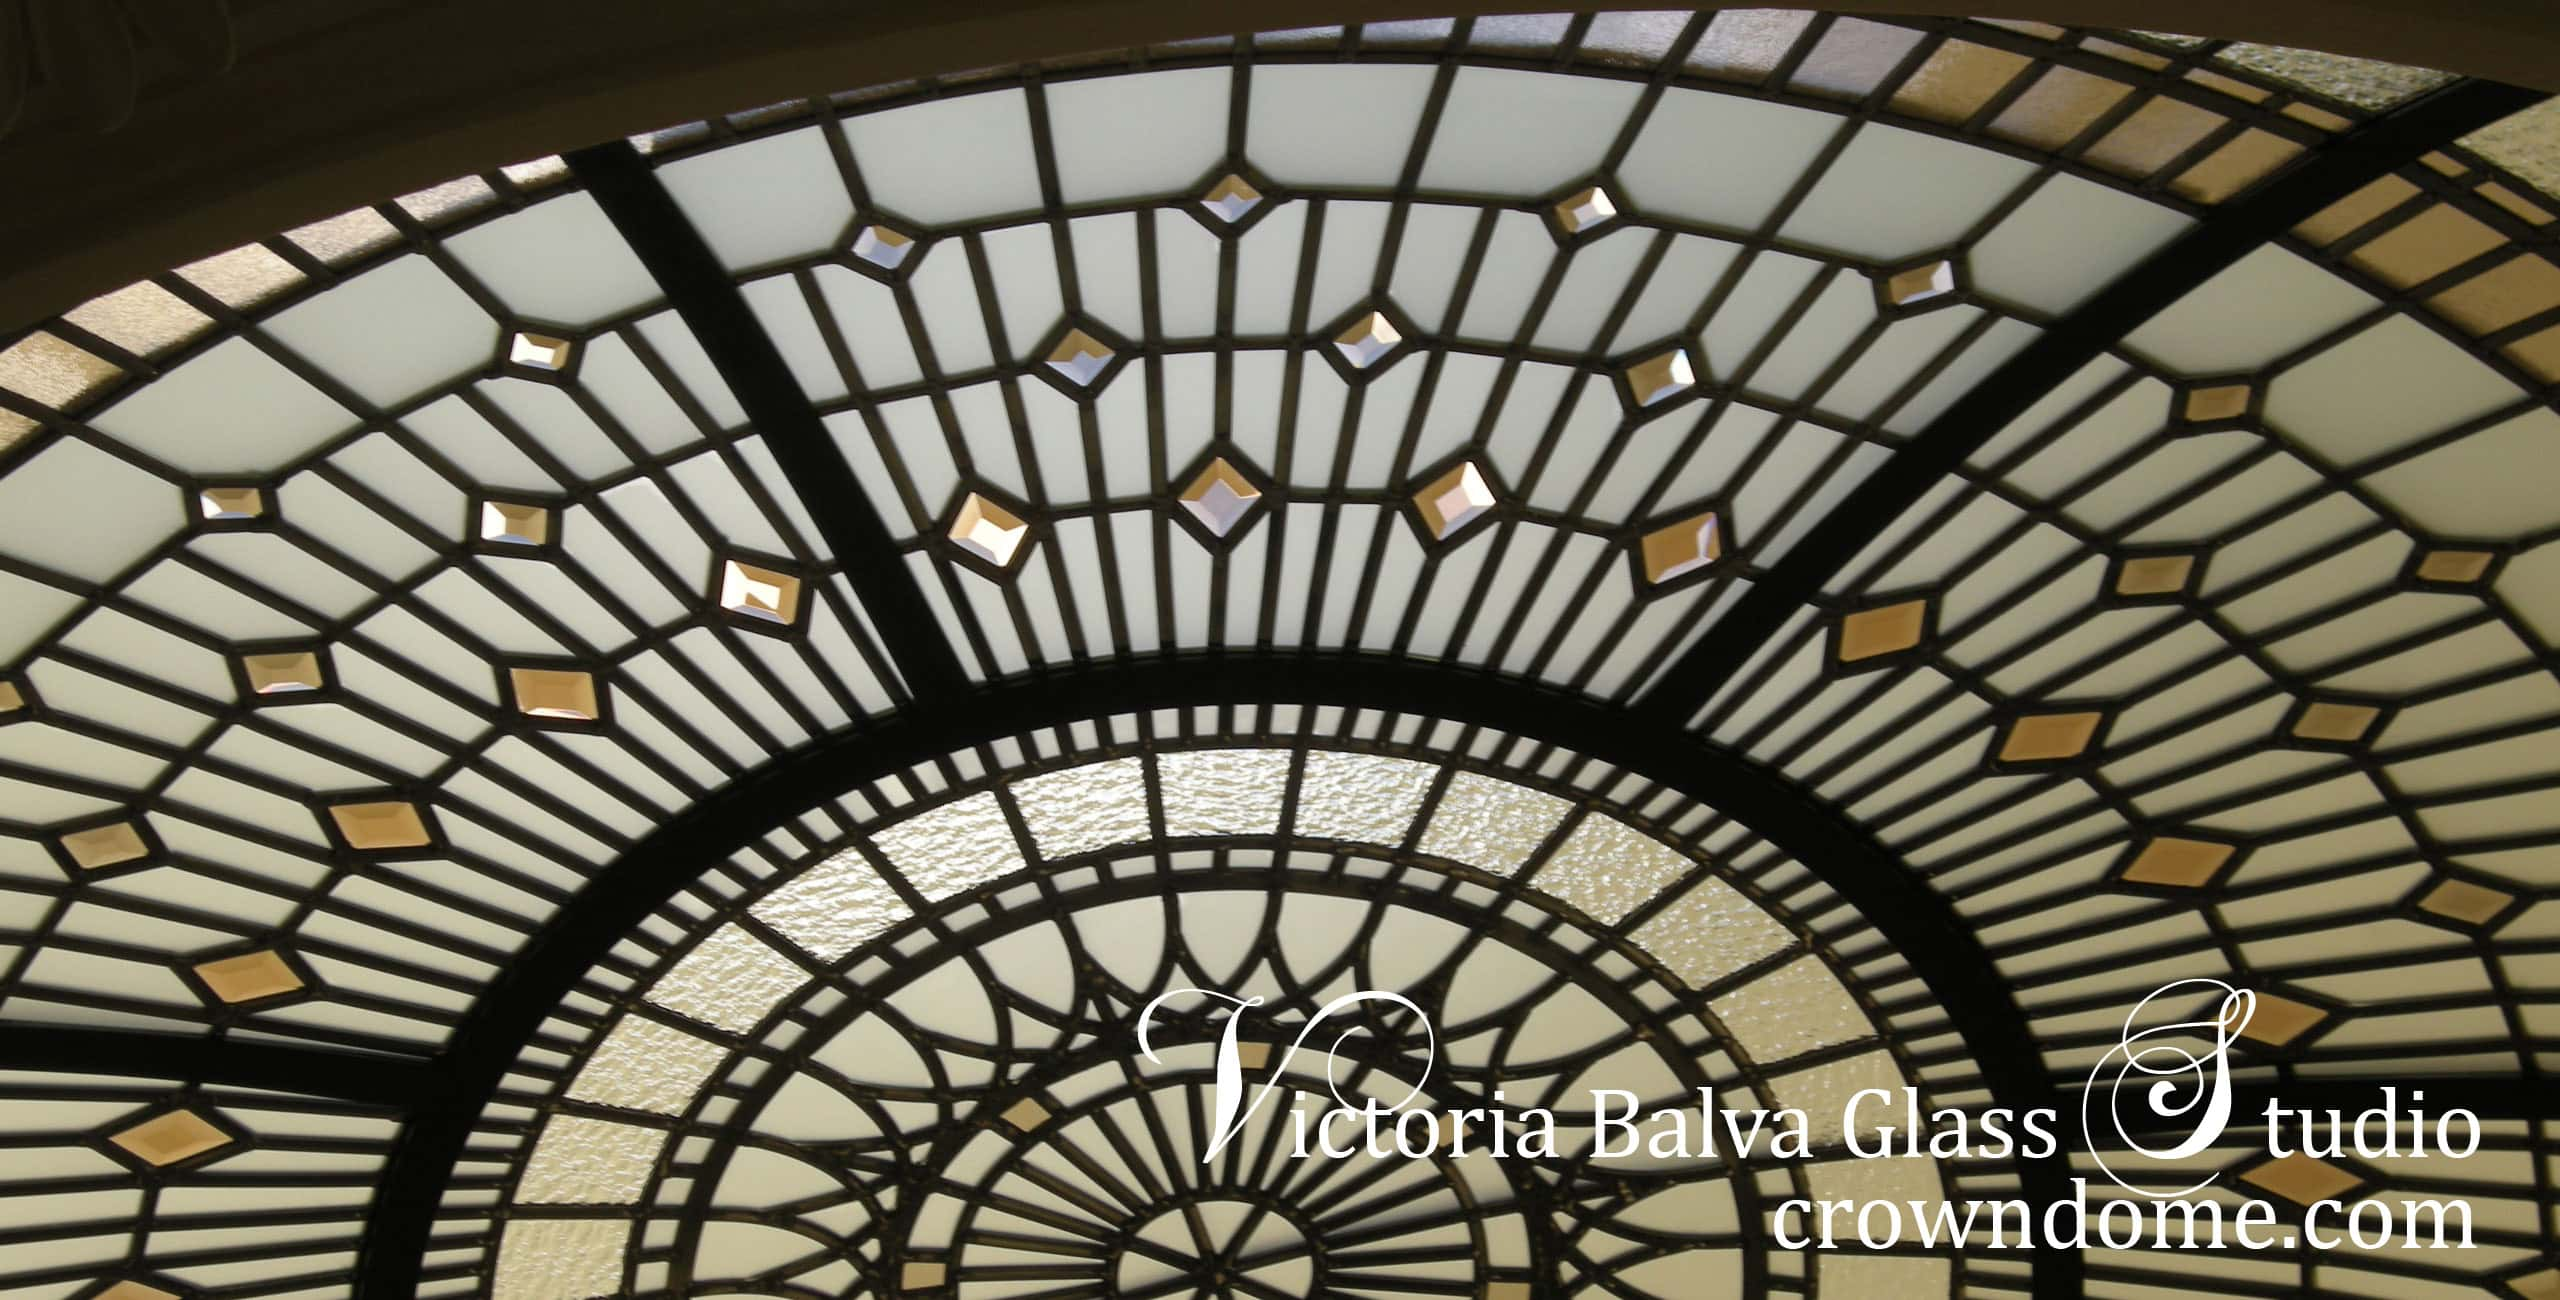 Stained beveled leaded glass dome detail with colored beveled glass and bronze textured glass for a foyer of a custom built residence. Warm colors of leaded glass dome in combination with blue sky color create dramatic colors combinations. Original leaded glass dome design by glass artist Victoria Balva